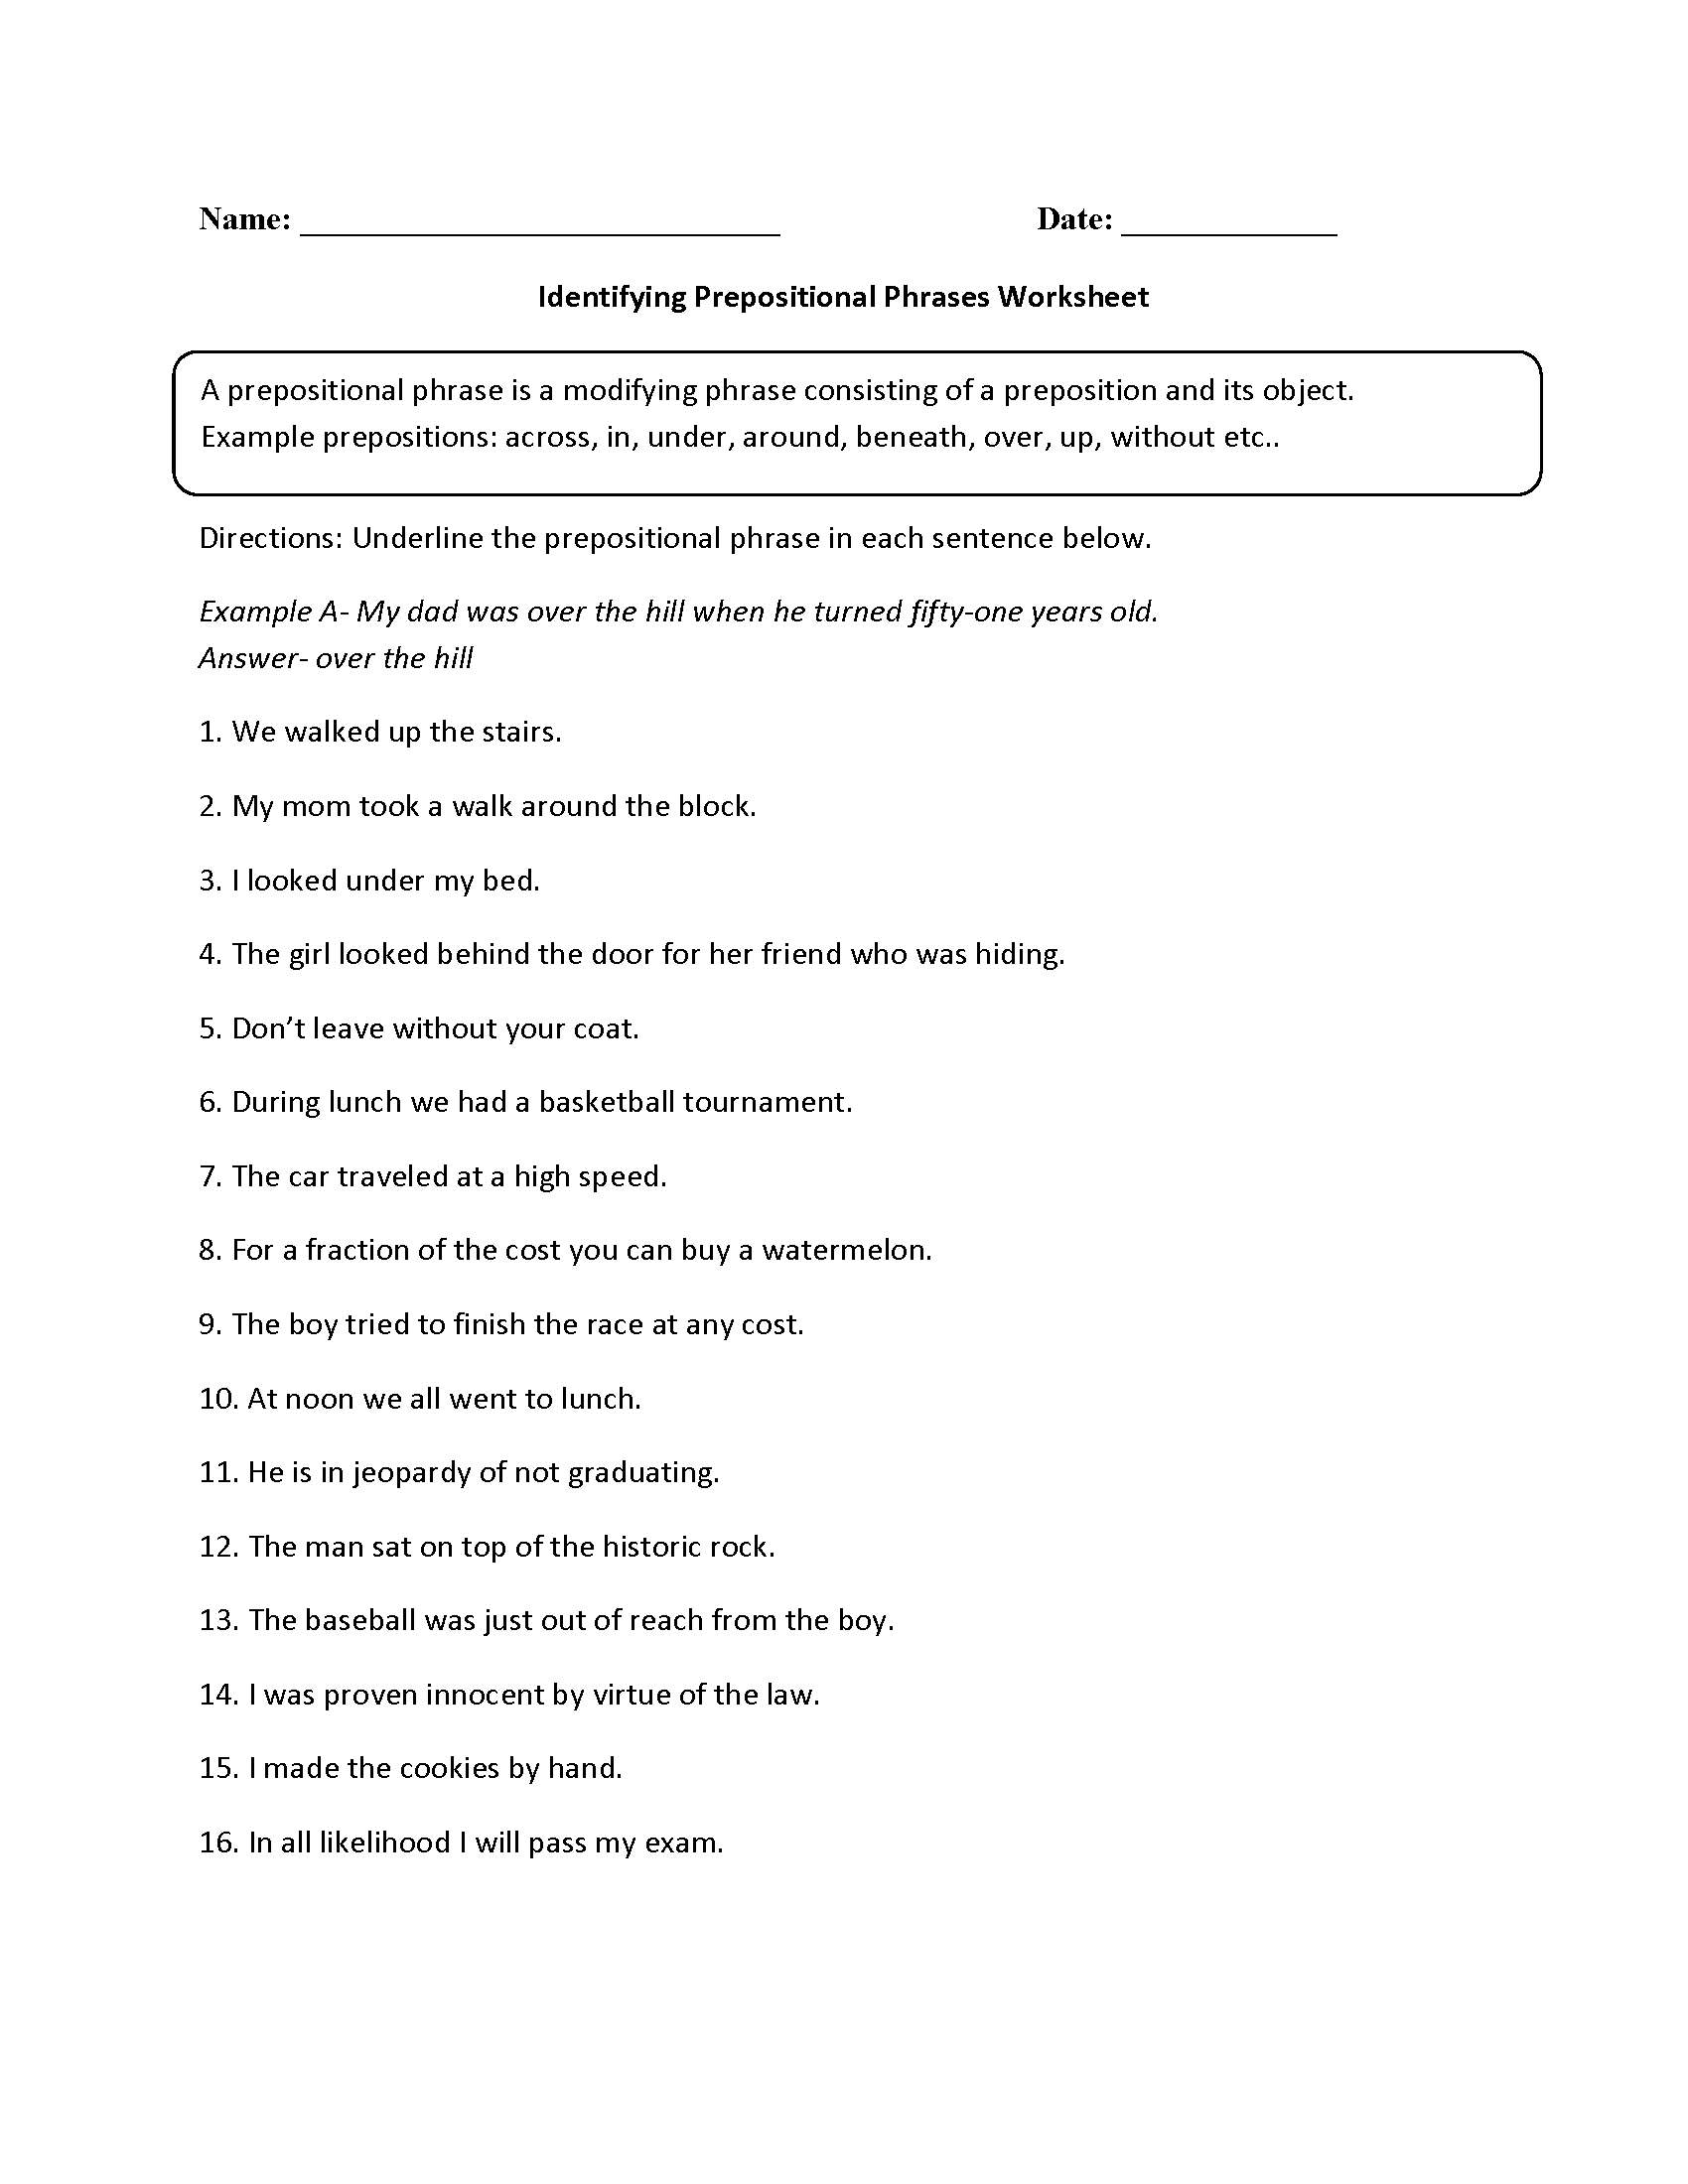 Worksheets Prepositional Phrase Worksheet prepositional phrases worksheets identifying worksheet